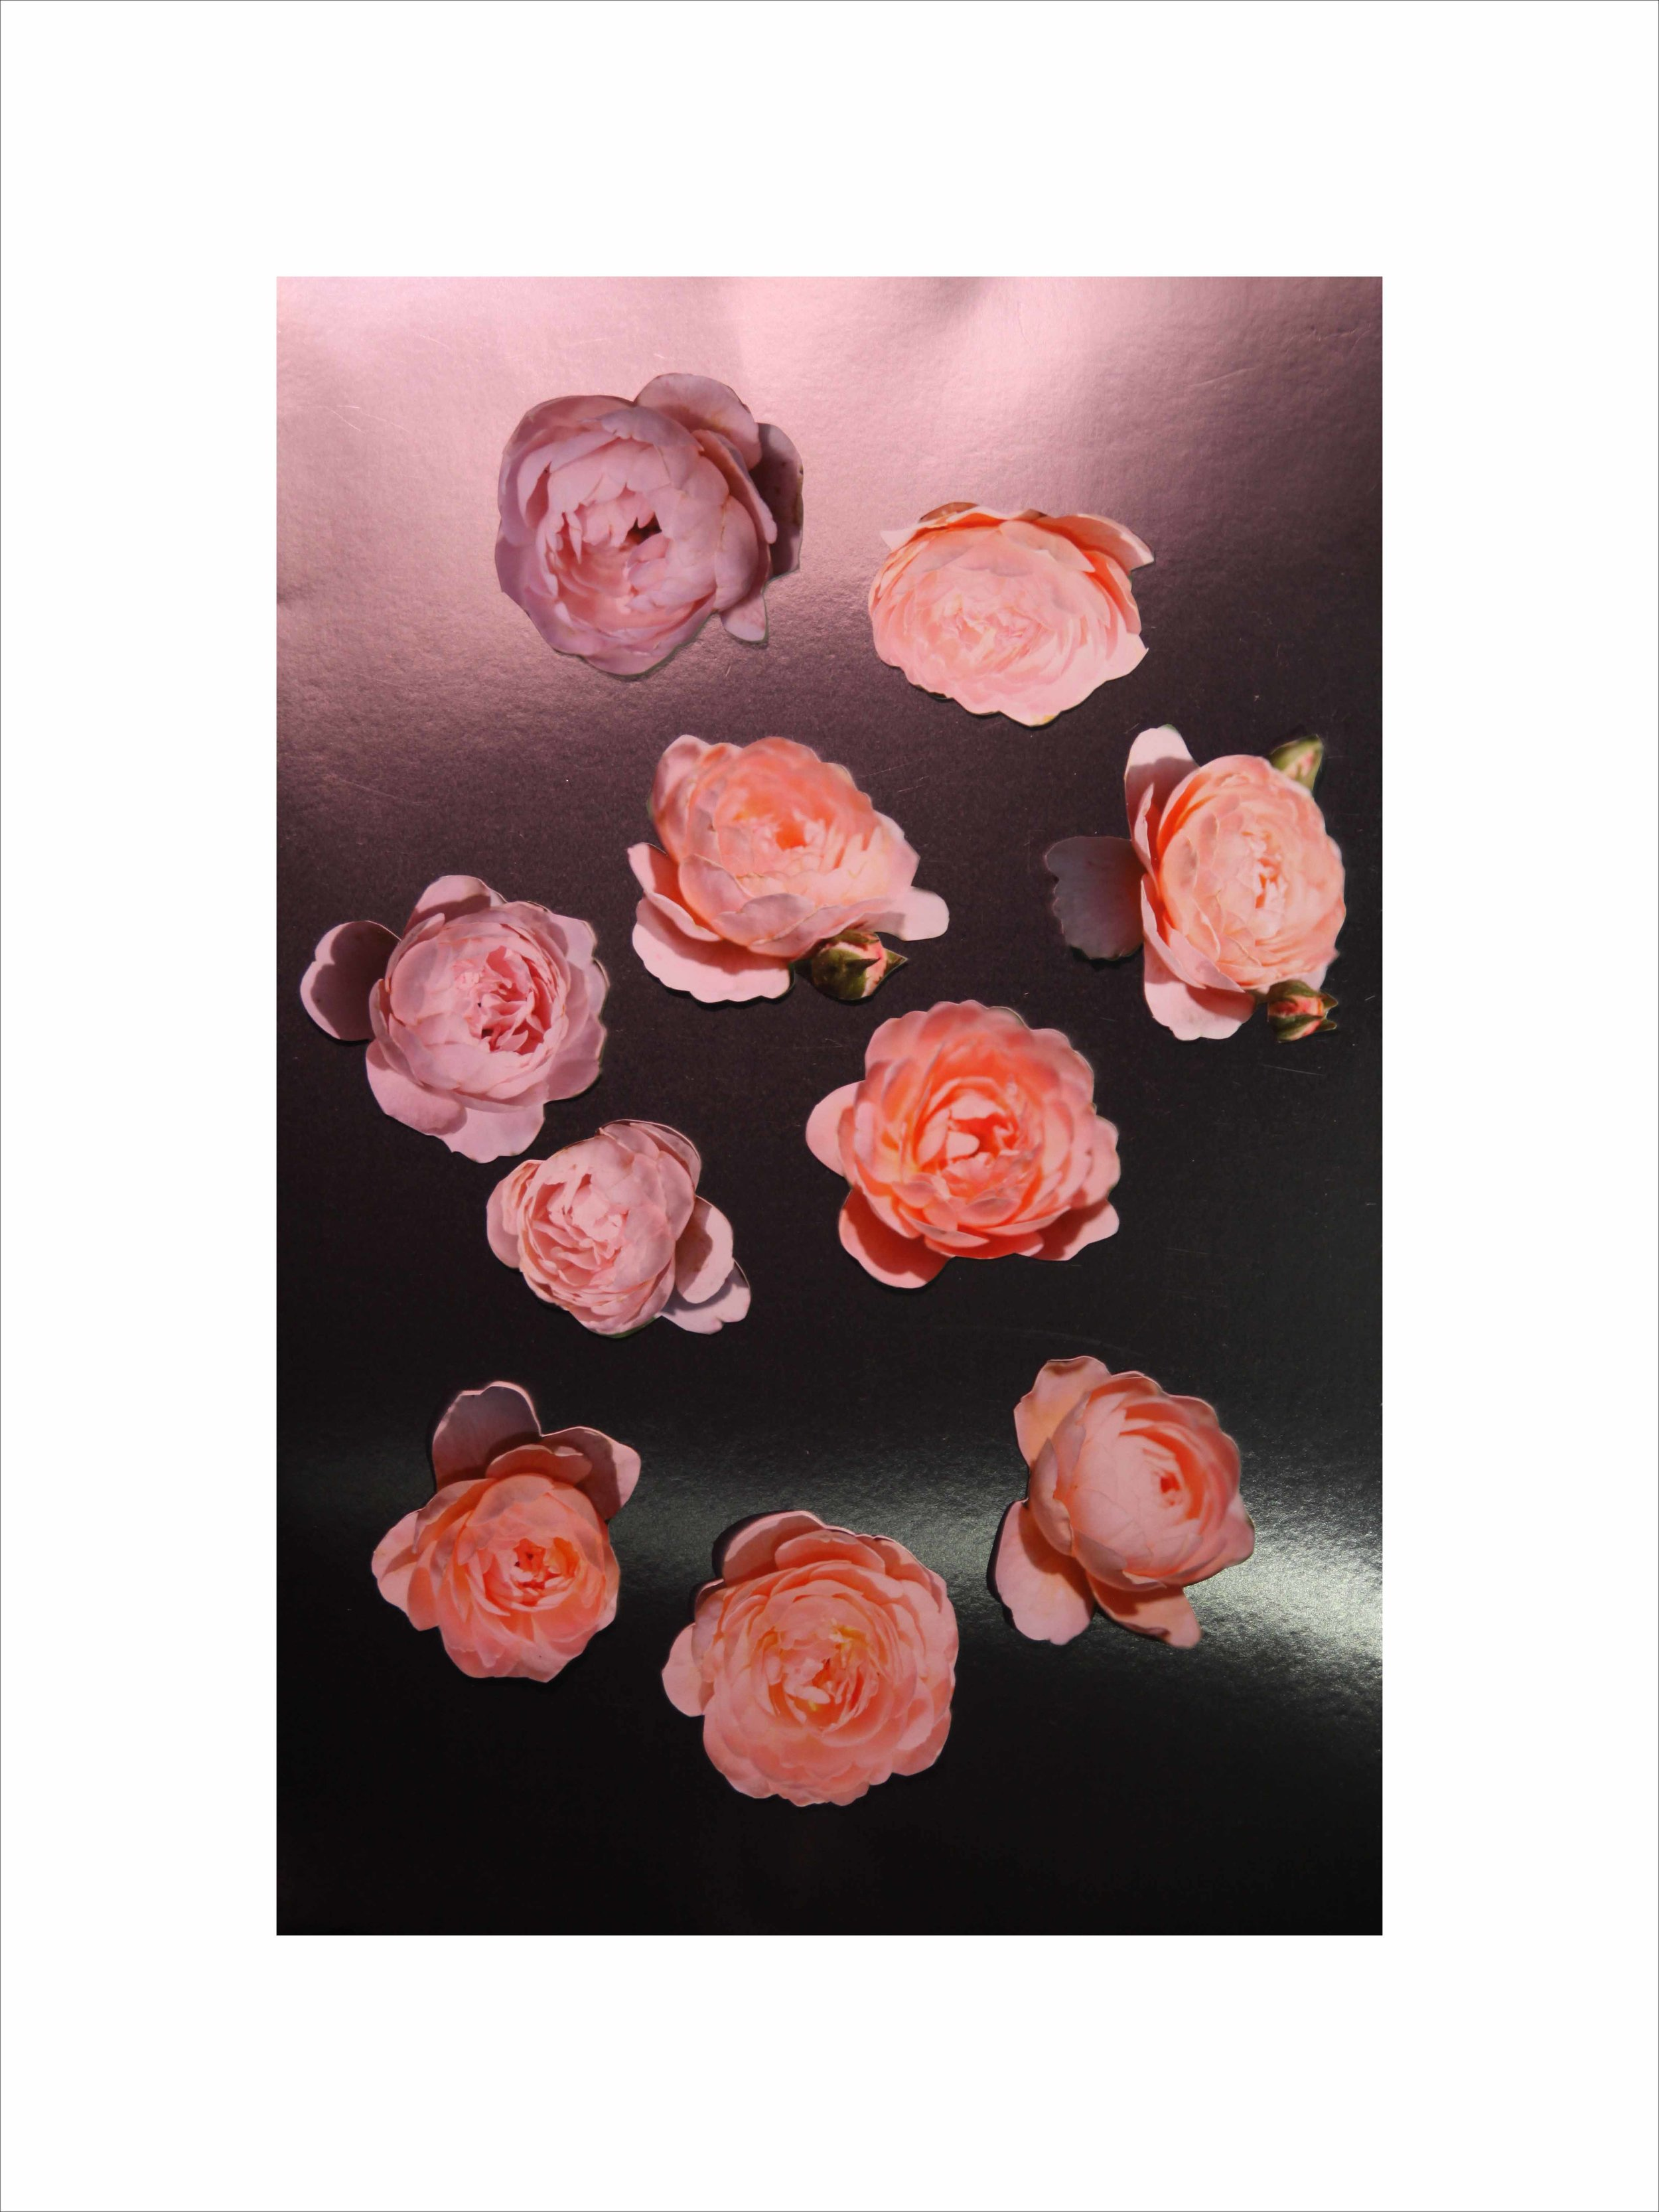 Queen of Sweden Roses I,    2019  Digital photography  32H x 24W inches